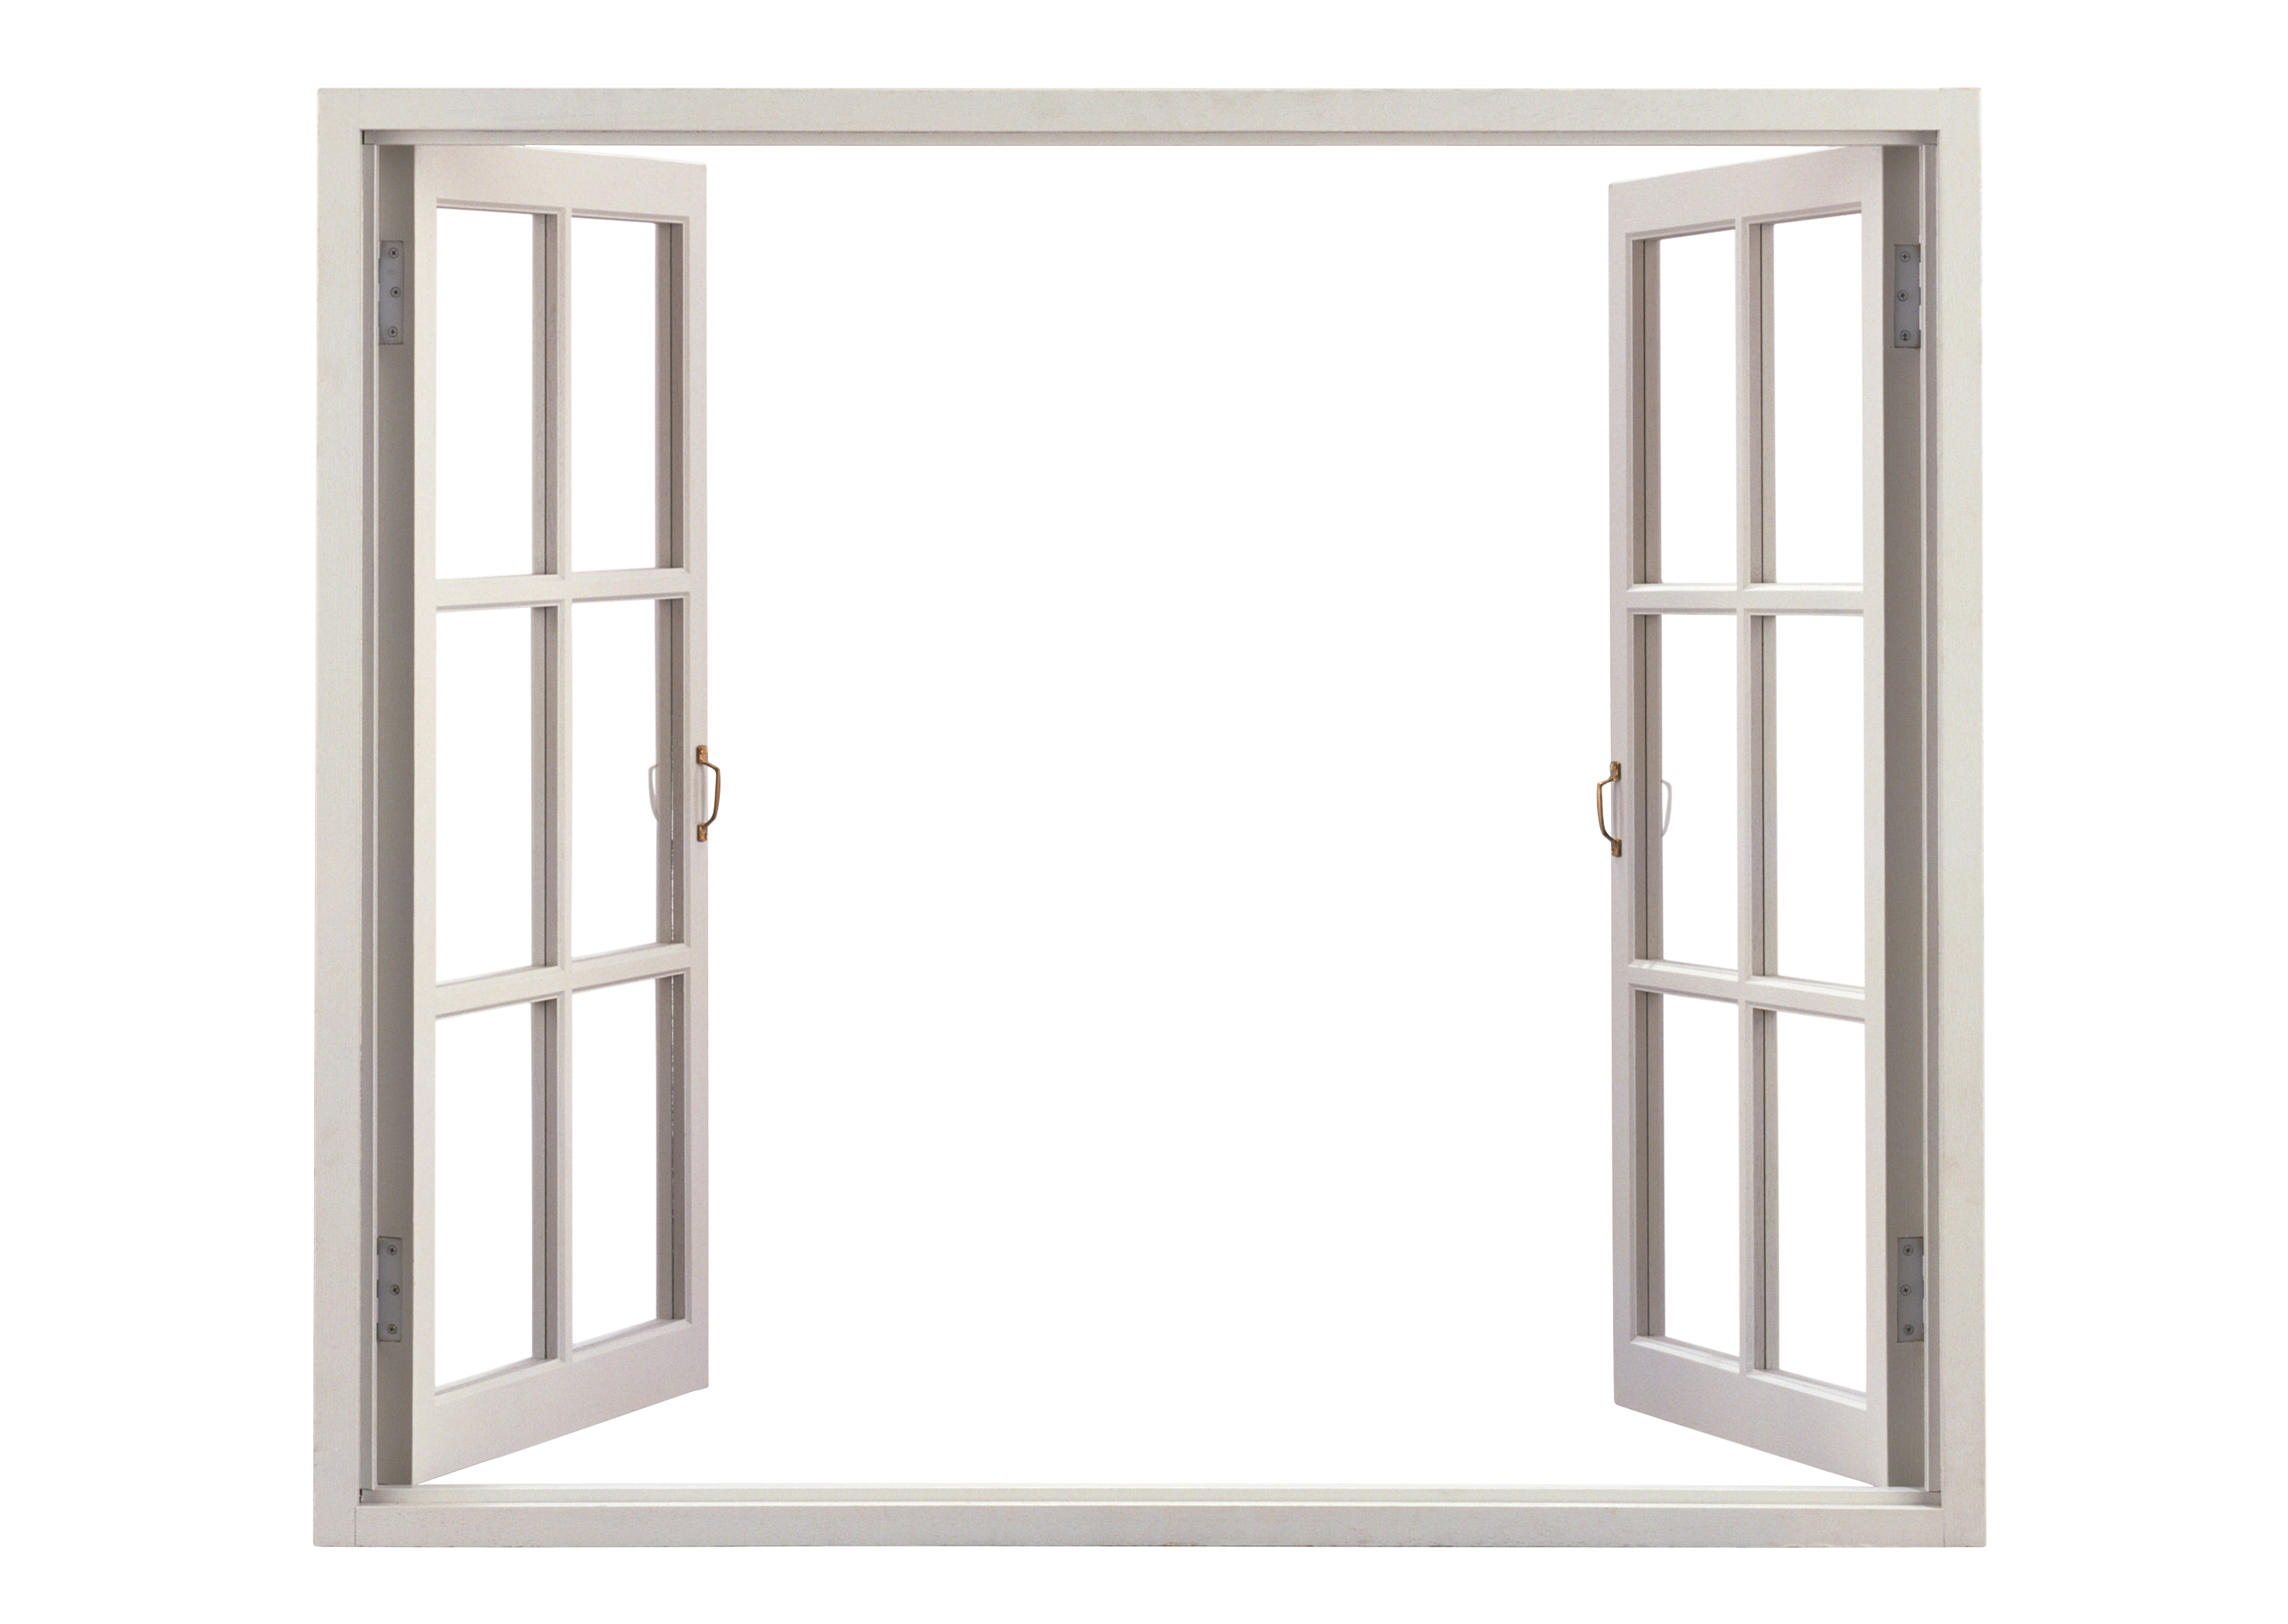 Window png clipart picture freeuse download Window PNG images free download, open window picture freeuse download